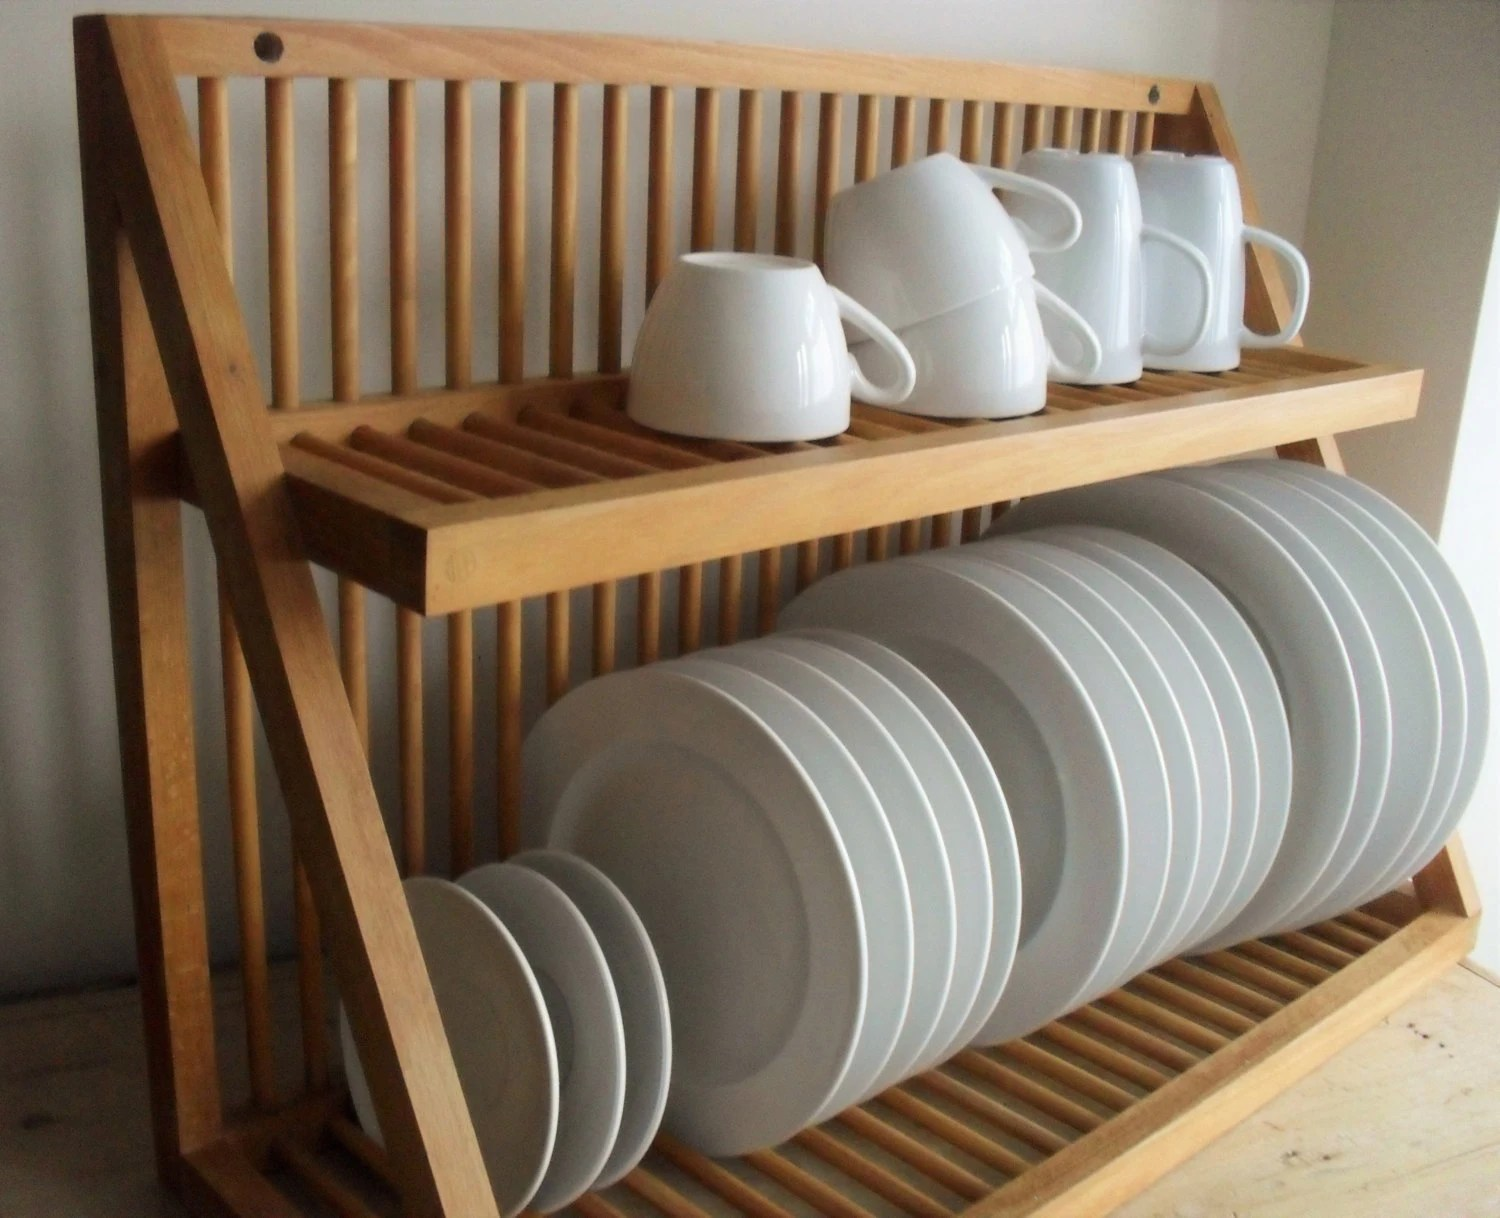 Reserved For Aoak Plate Rack Vintage Wooden Plate Storage